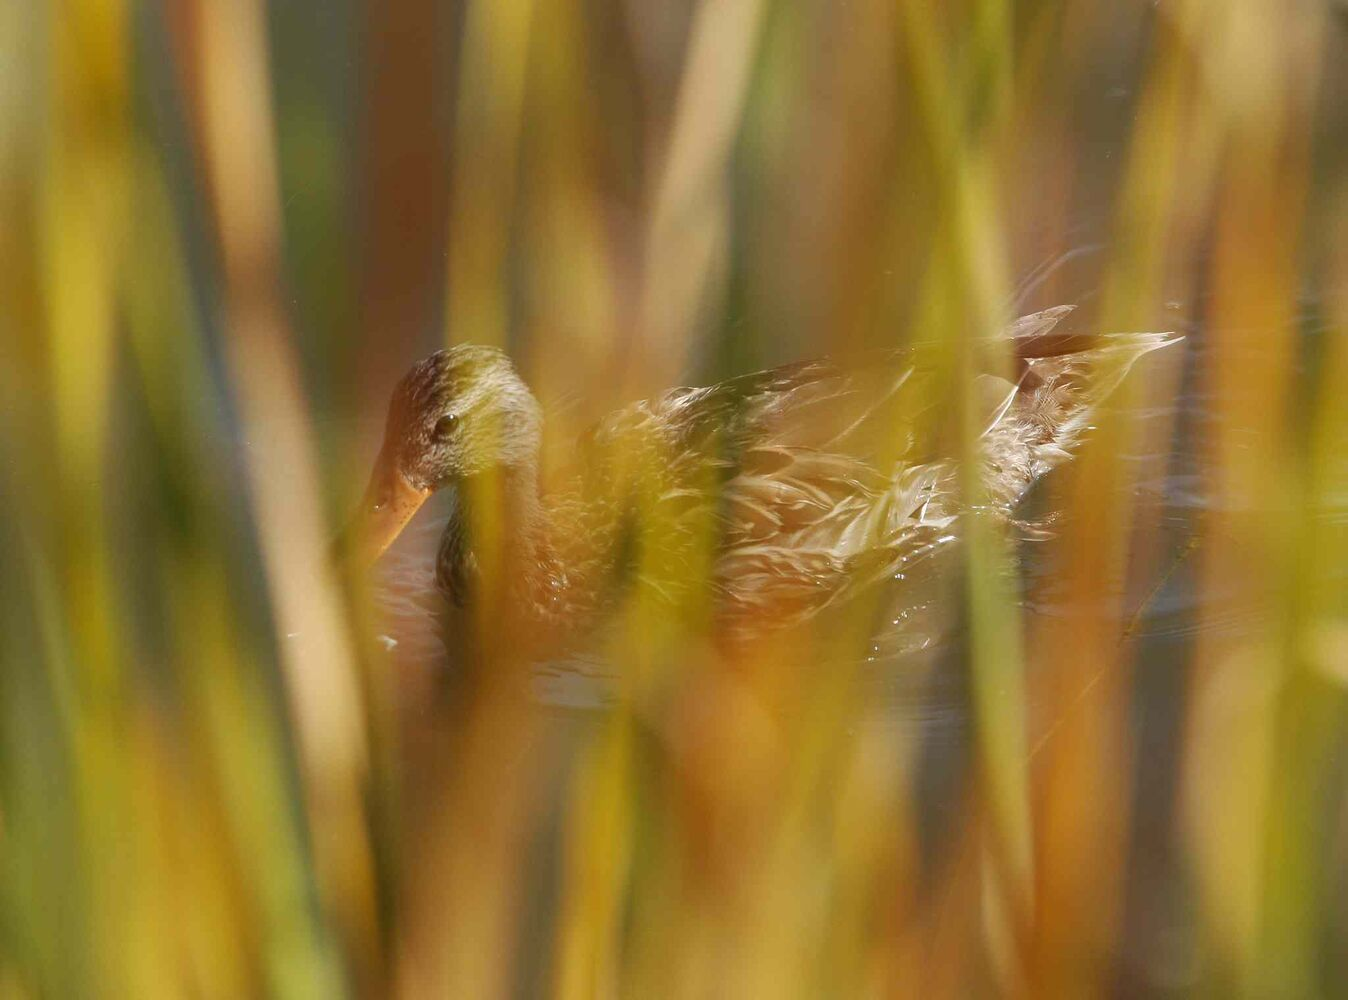 A mallard duck floats in a pond beyond the reeds and tall grass. (KEN GIGLIOTTI / WINNIPEG FREE PRESS)